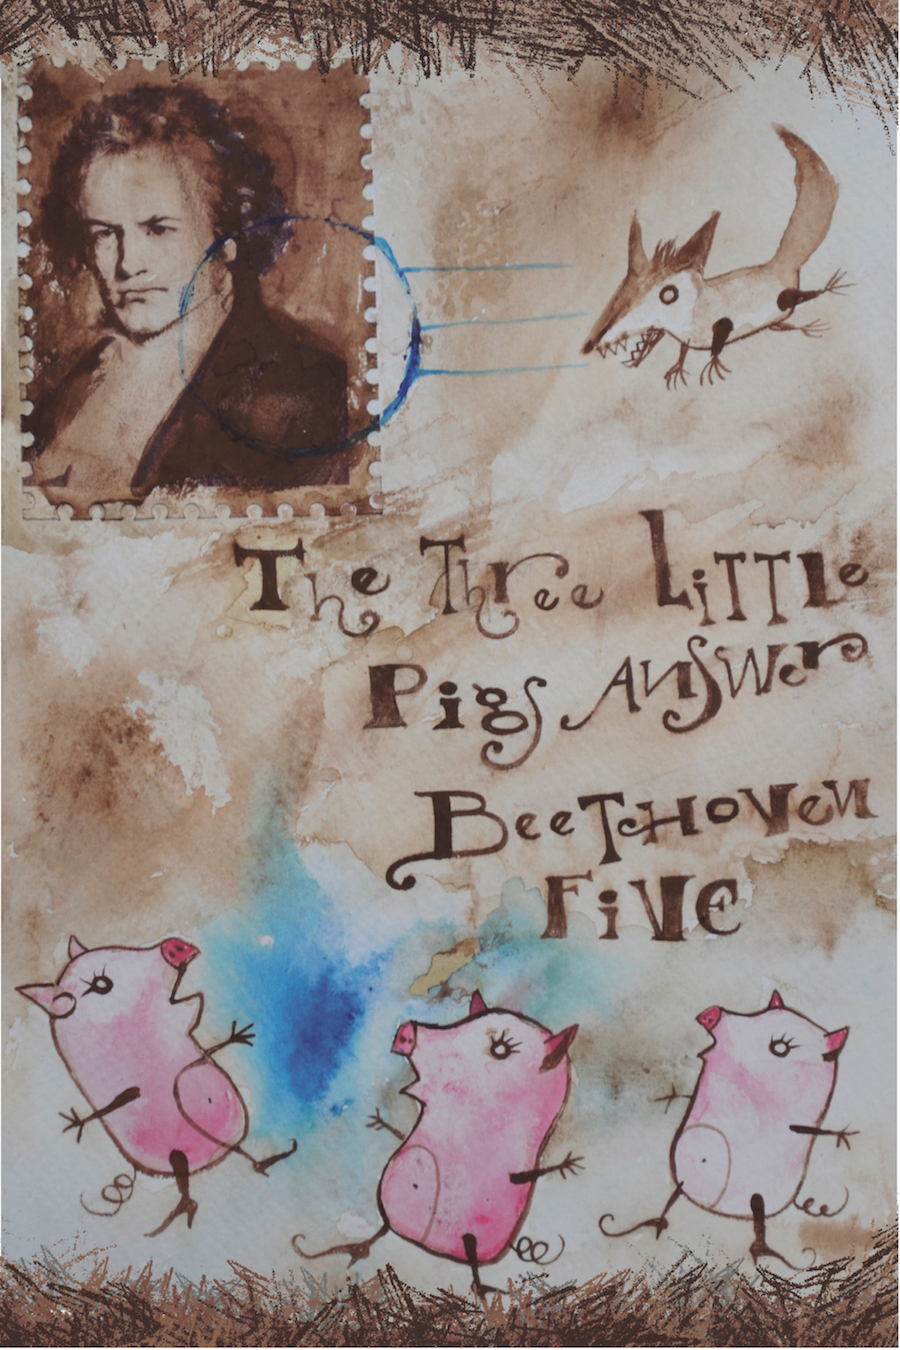 The Three Little Pigs Answer Beethoven Five